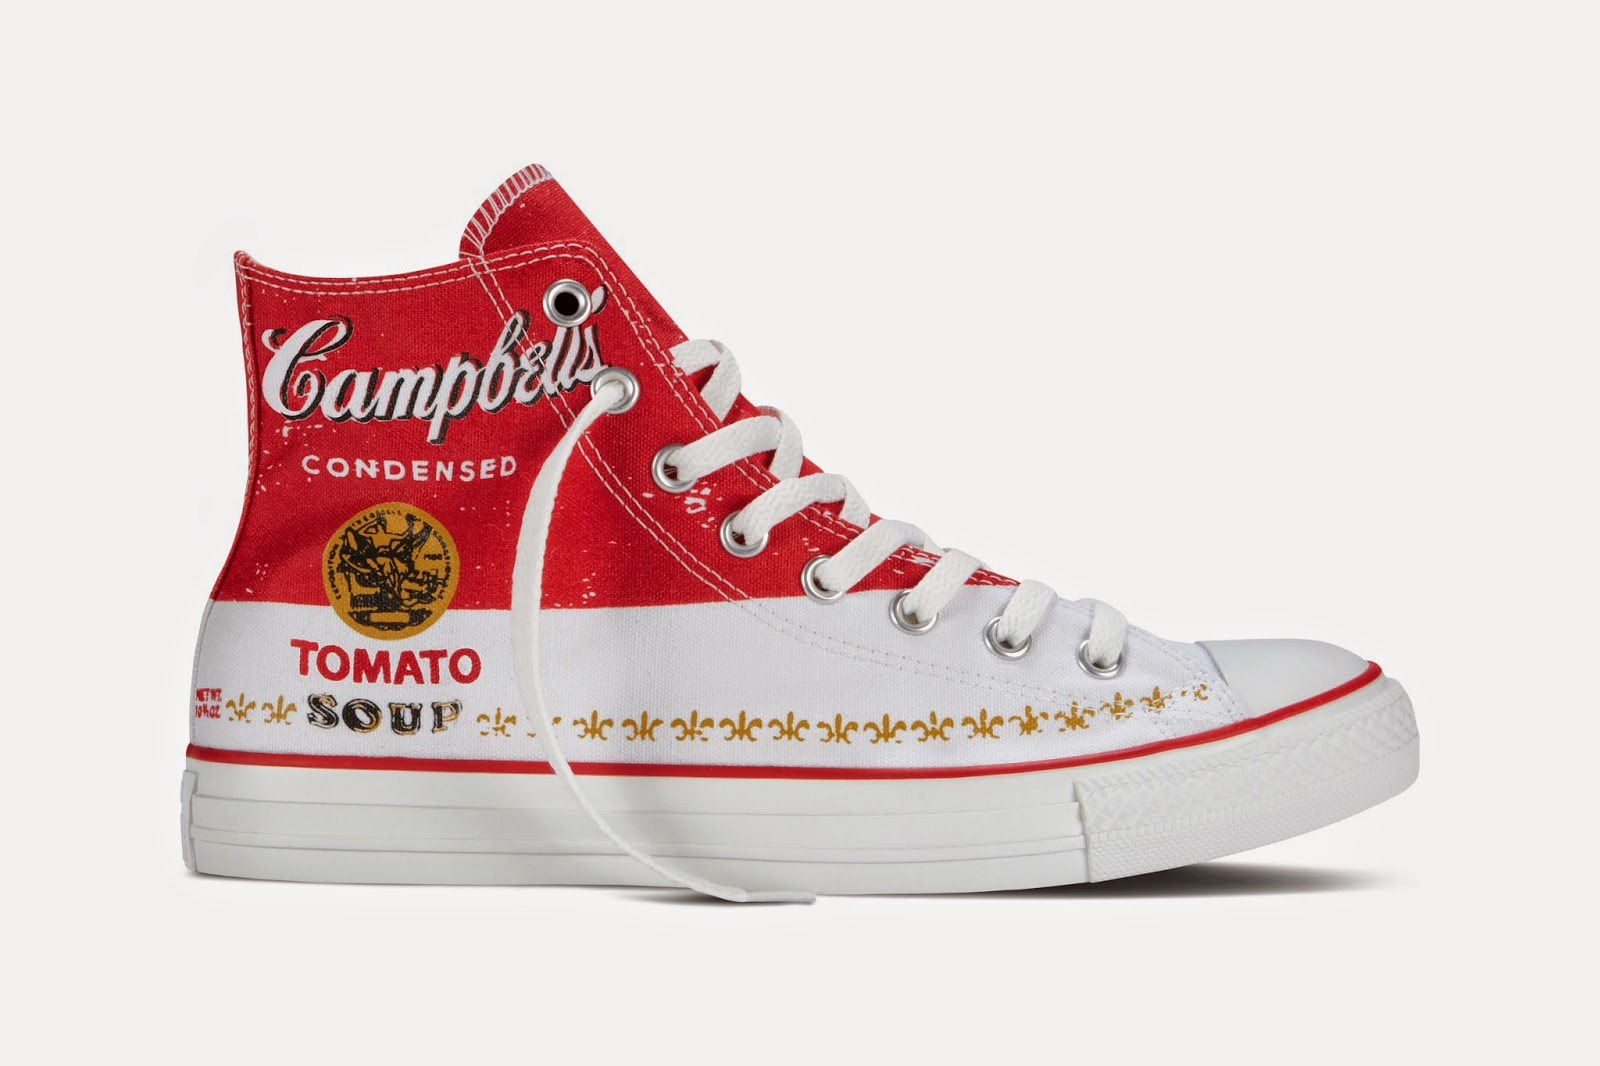 converse macht andy warhols siebdrucke zum all star art. Black Bedroom Furniture Sets. Home Design Ideas